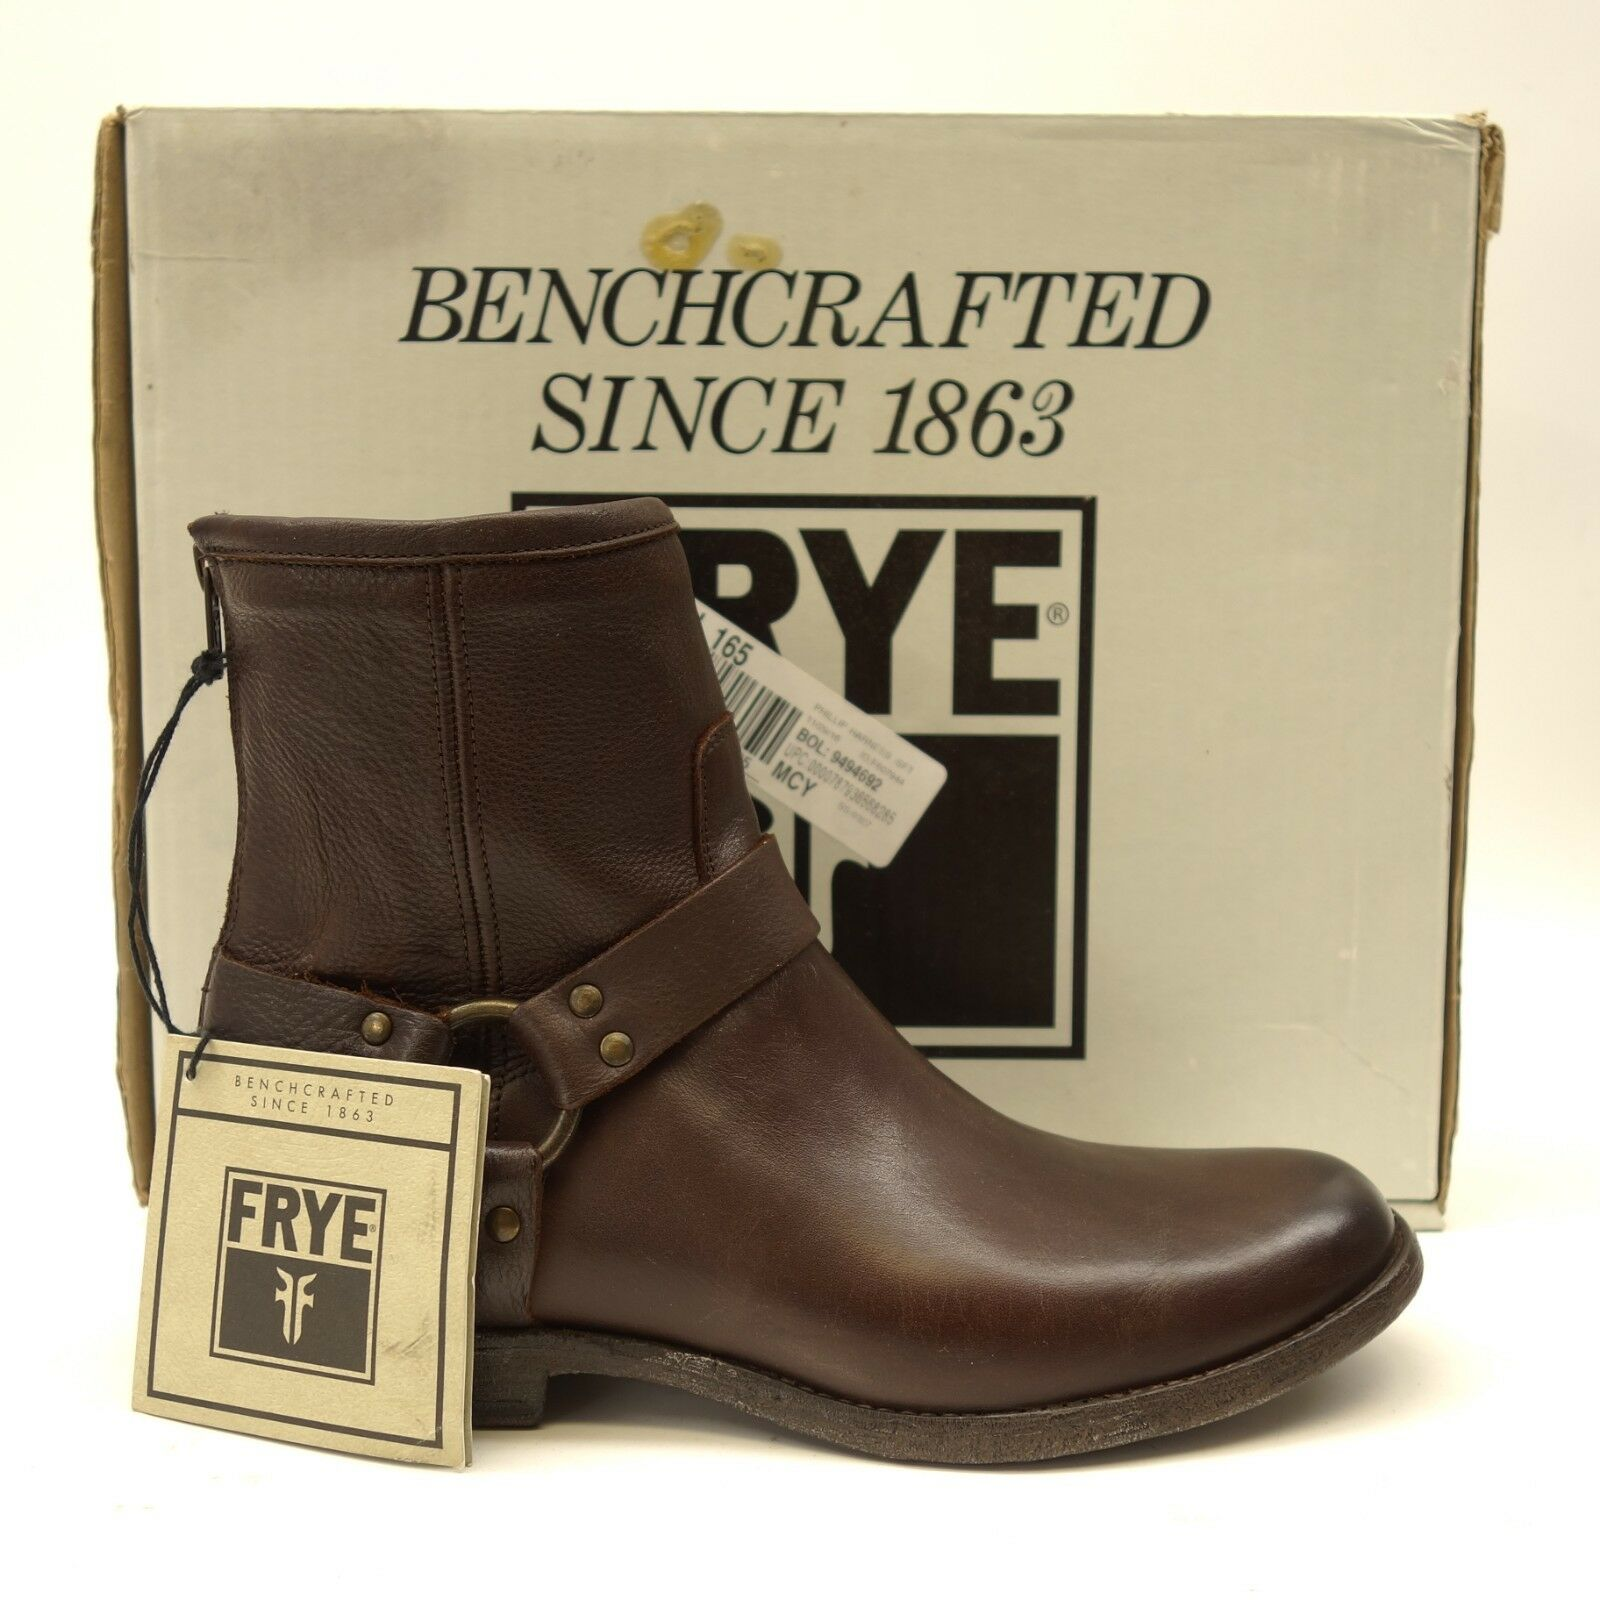 New Frye The Phillip Fine Brown Short Short Short Harness Leather Motorcycle Boot Sz 9.5 b090e0